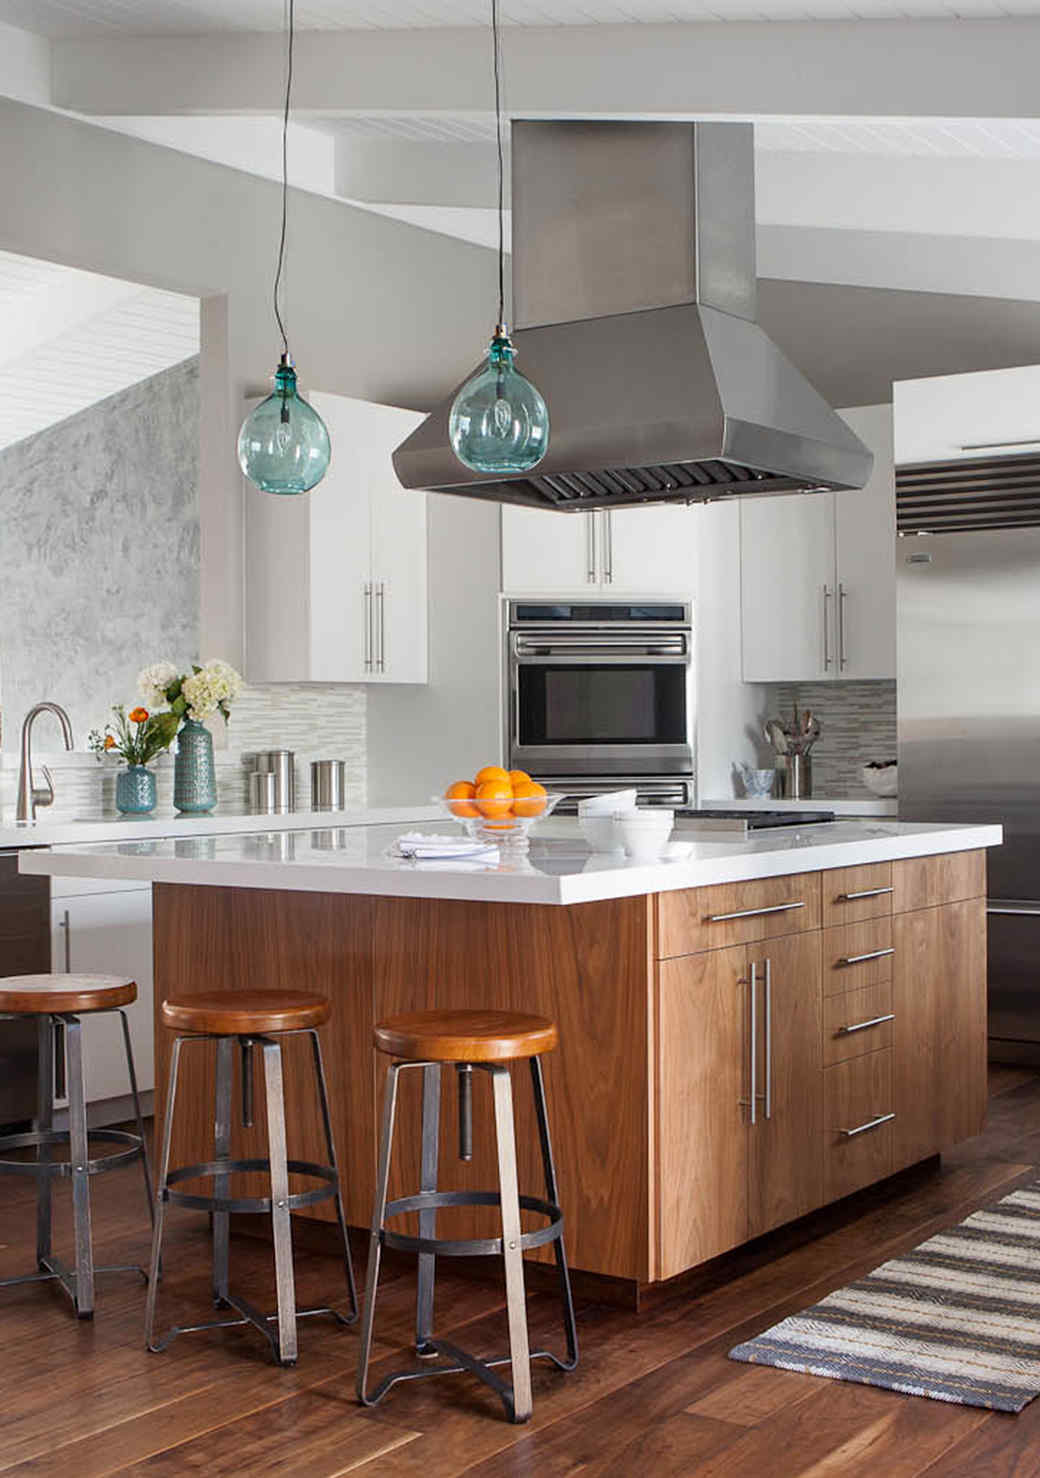 How to Update Your Kitchen Without Losing its Character